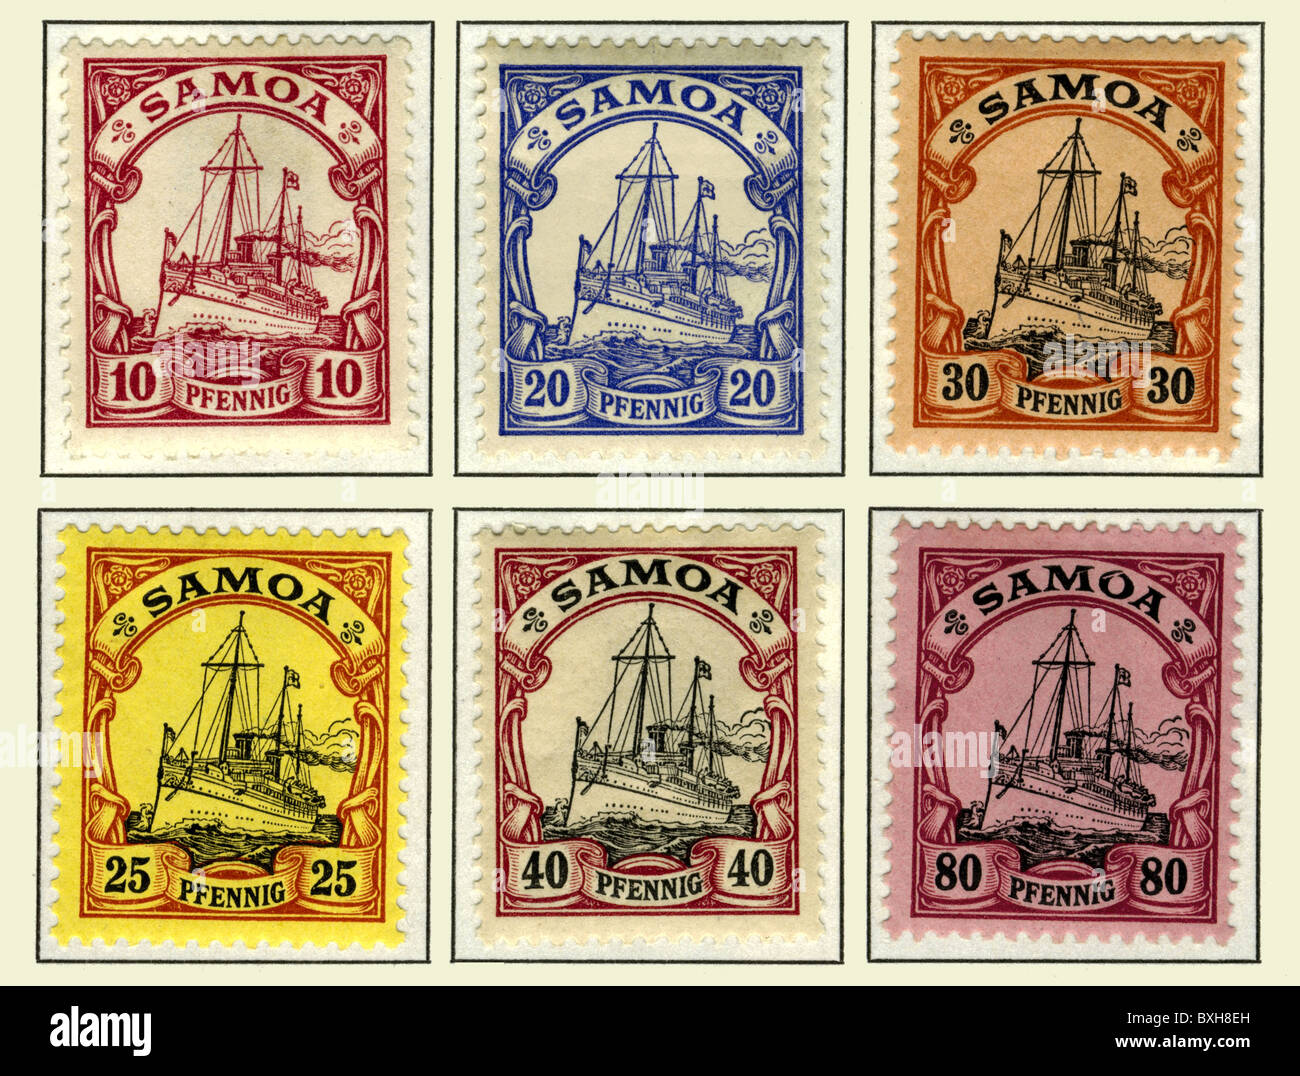 stamps, Samoa, mint, Germany, 1900, historic, historical, at the turn of the 19th / 20th century, German colony, - Stock Image